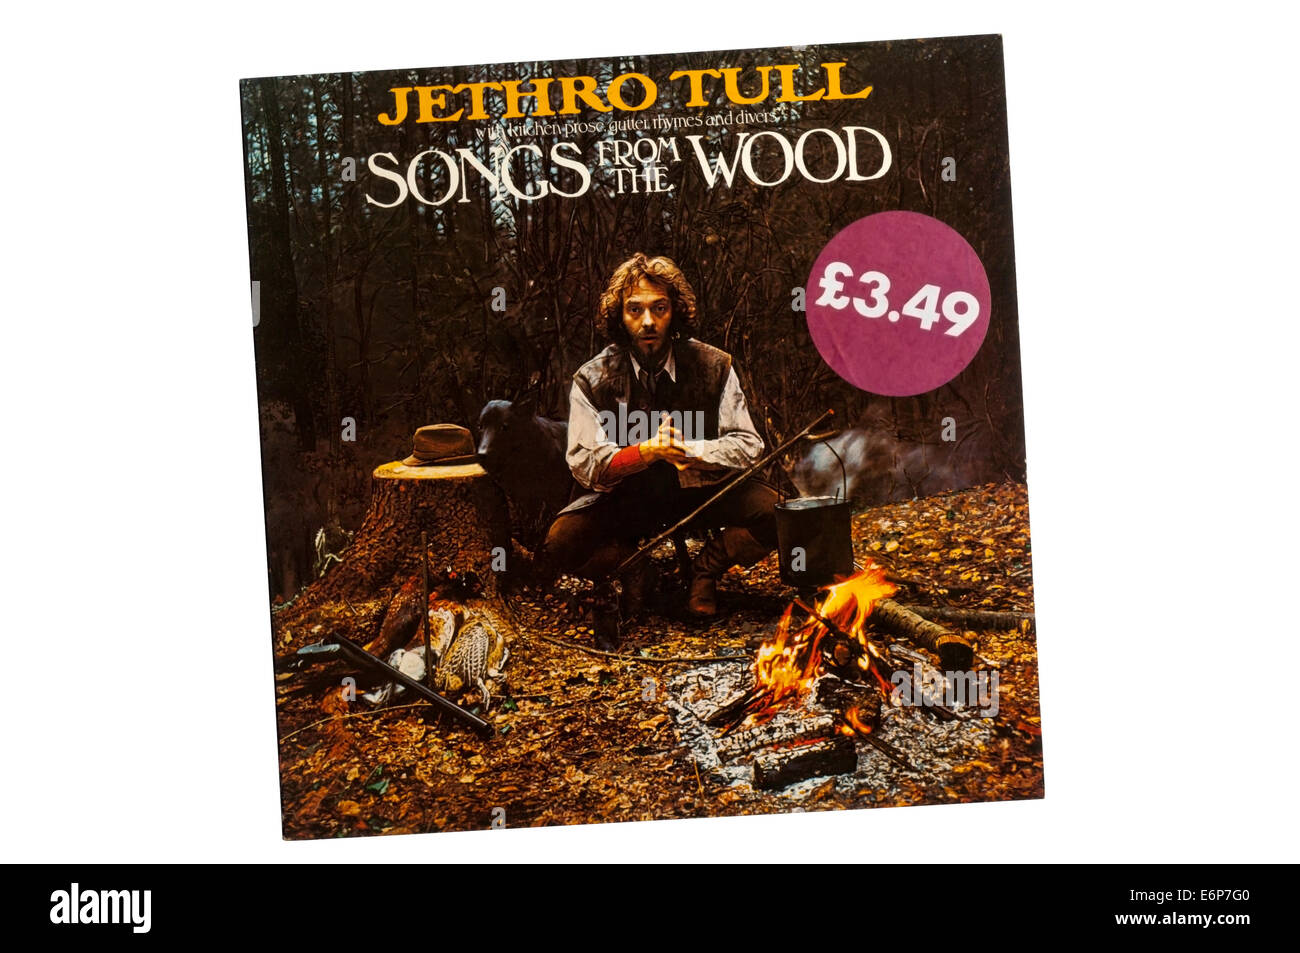 Songs from the Wood was the tenth studio album by Jethro Tull, released in 1977. - Stock Image